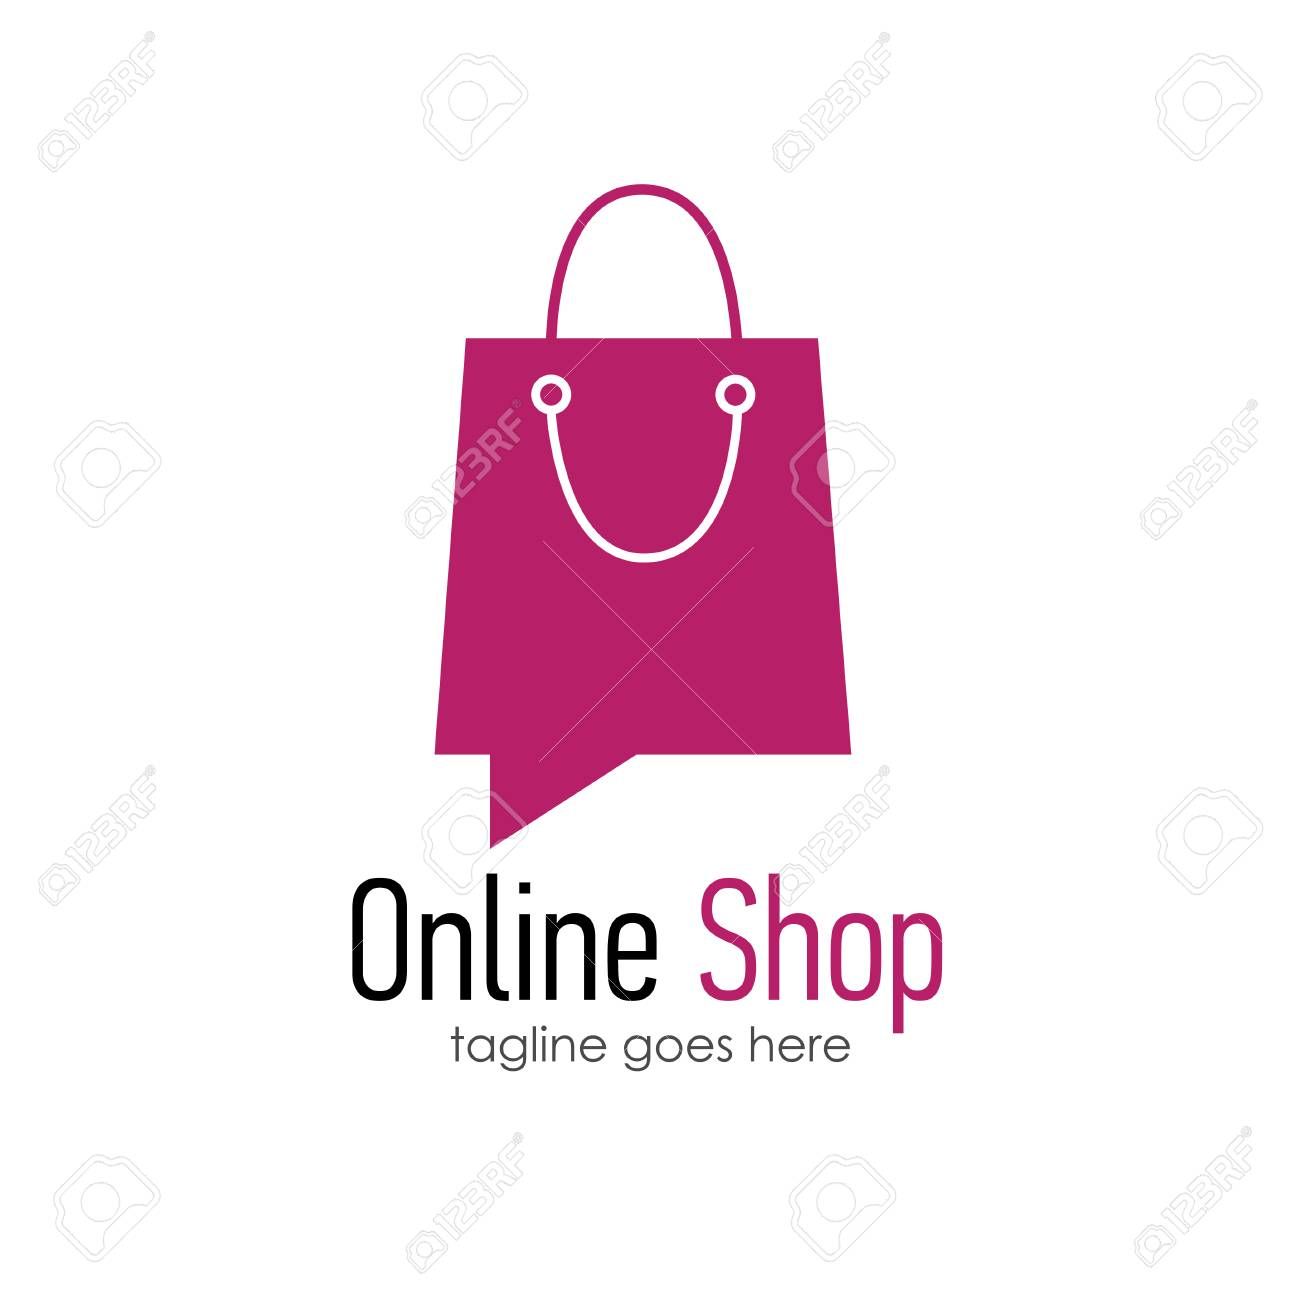 Online Shop Logo Design Template Royalty Free Cliparts Vectors And